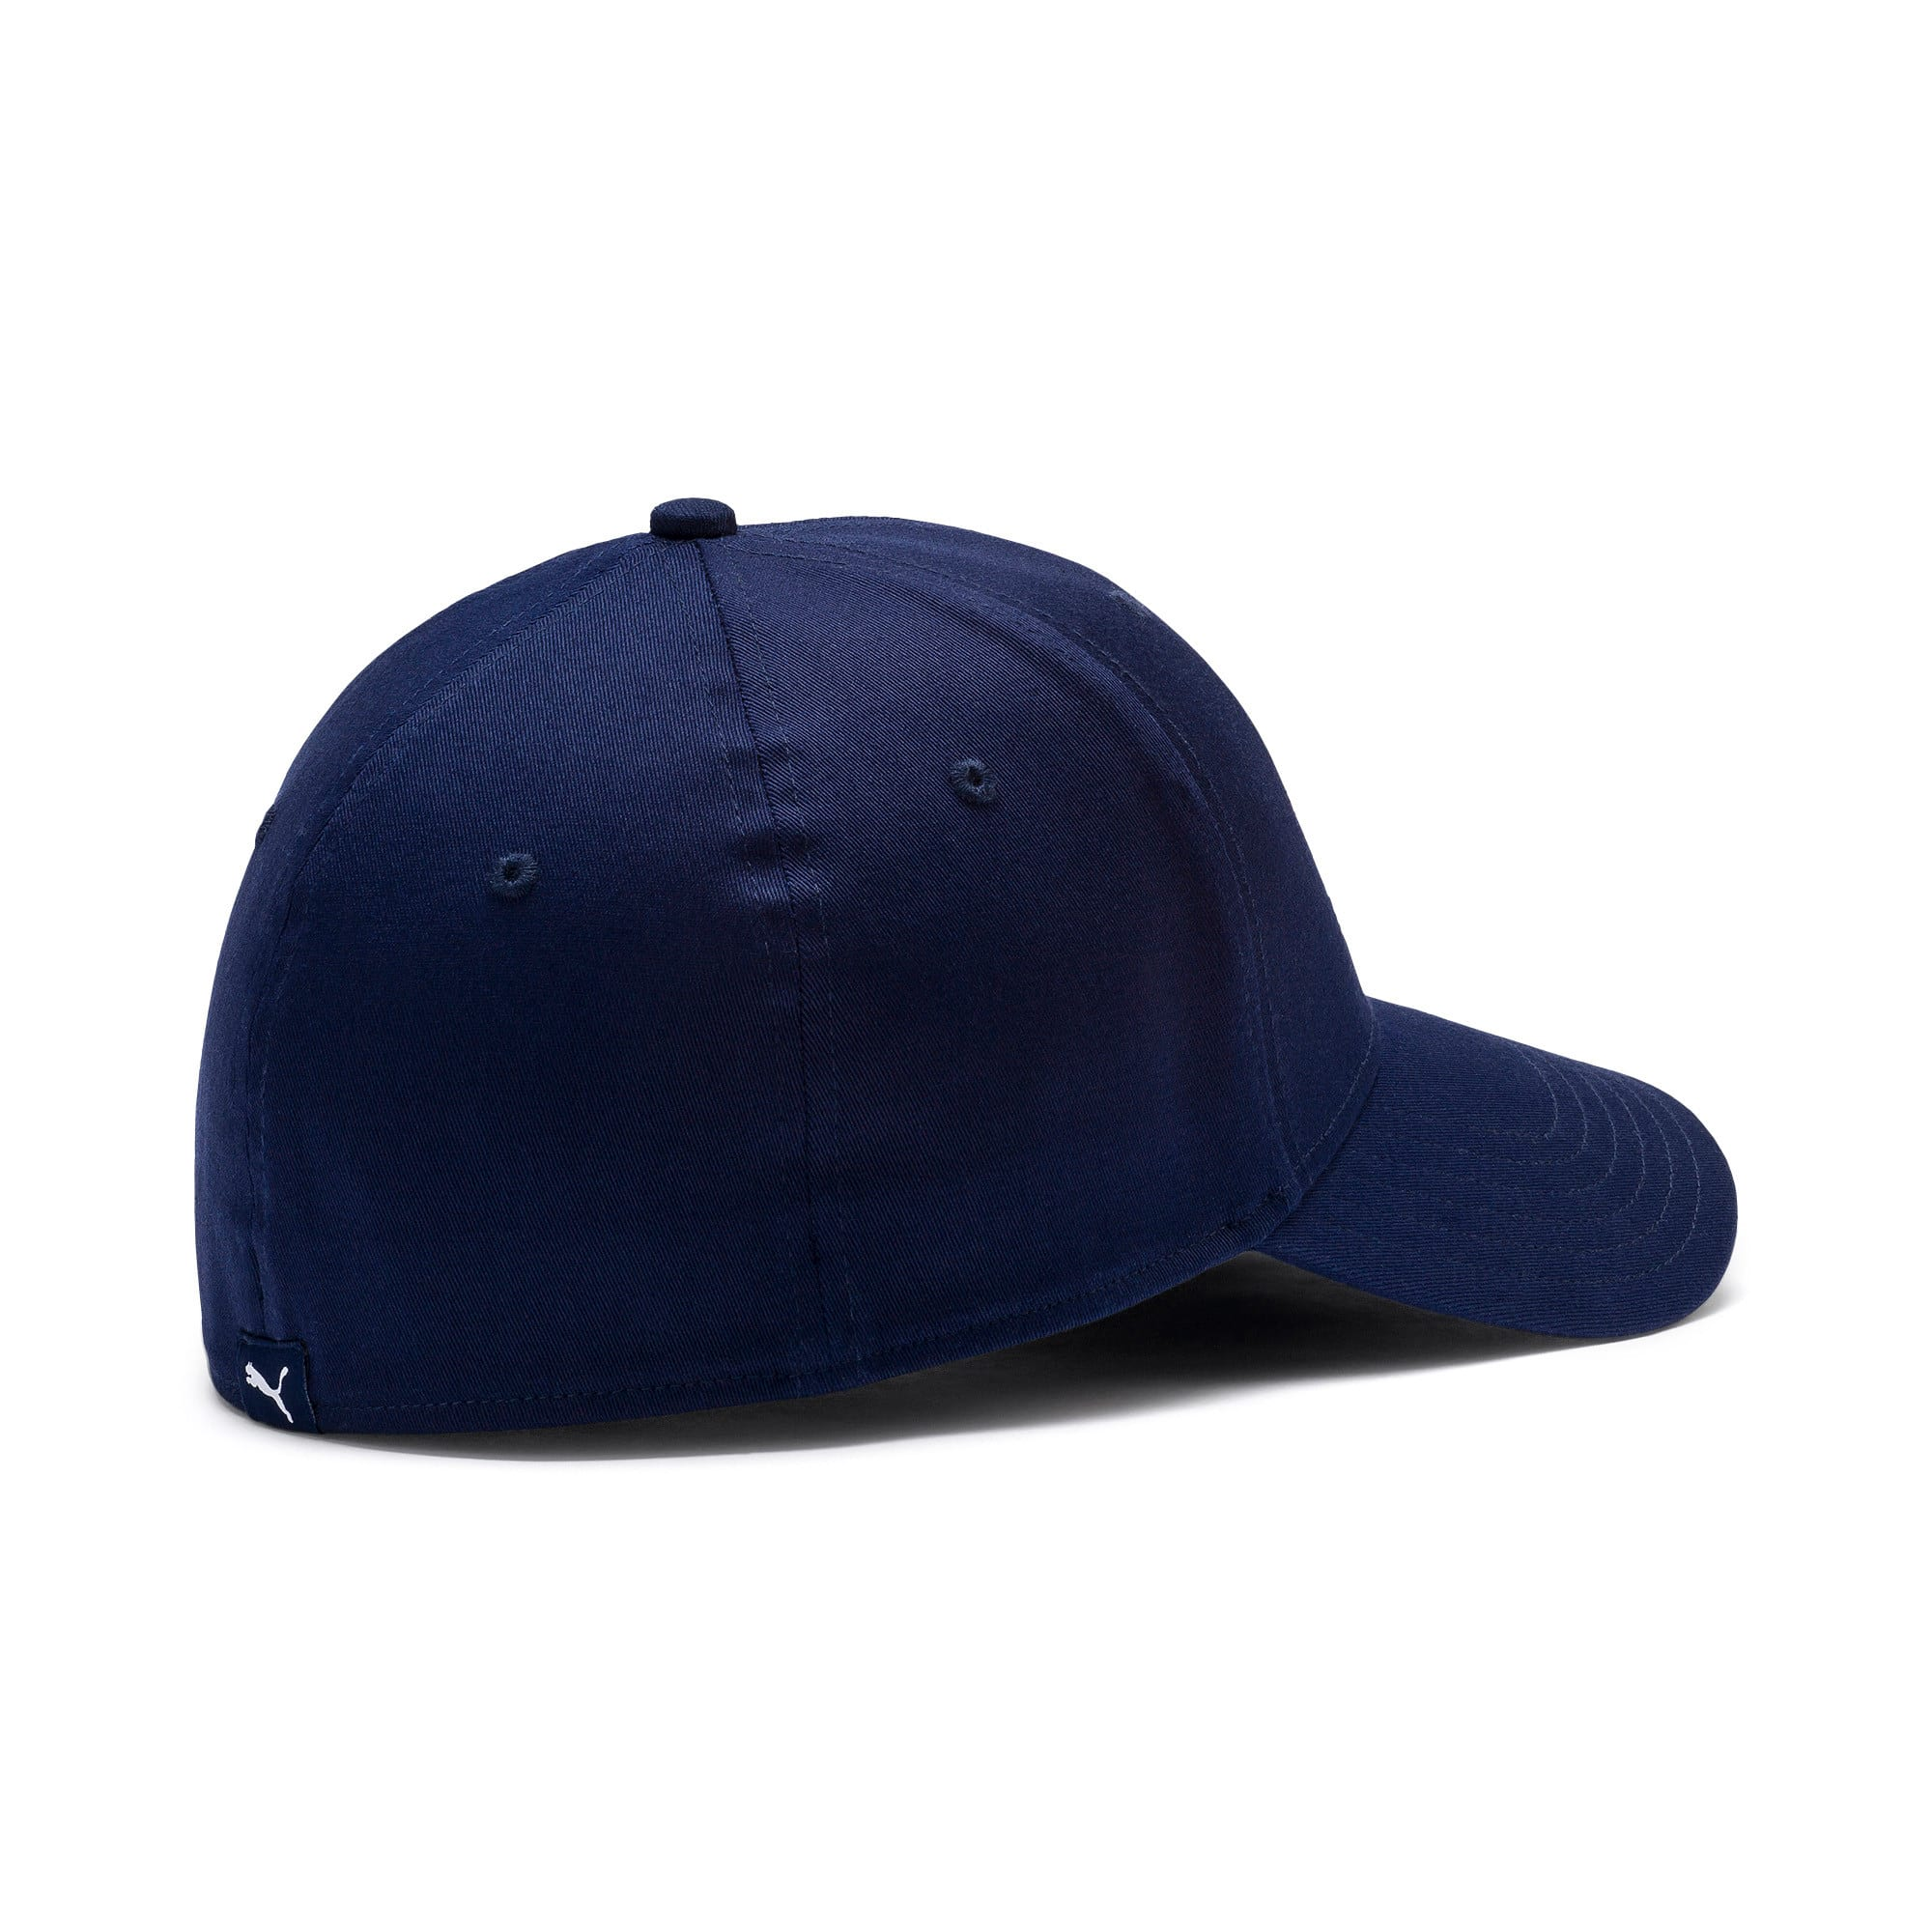 Thumbnail 3 of Stretchfit Baseball Cap, Peacoat, medium